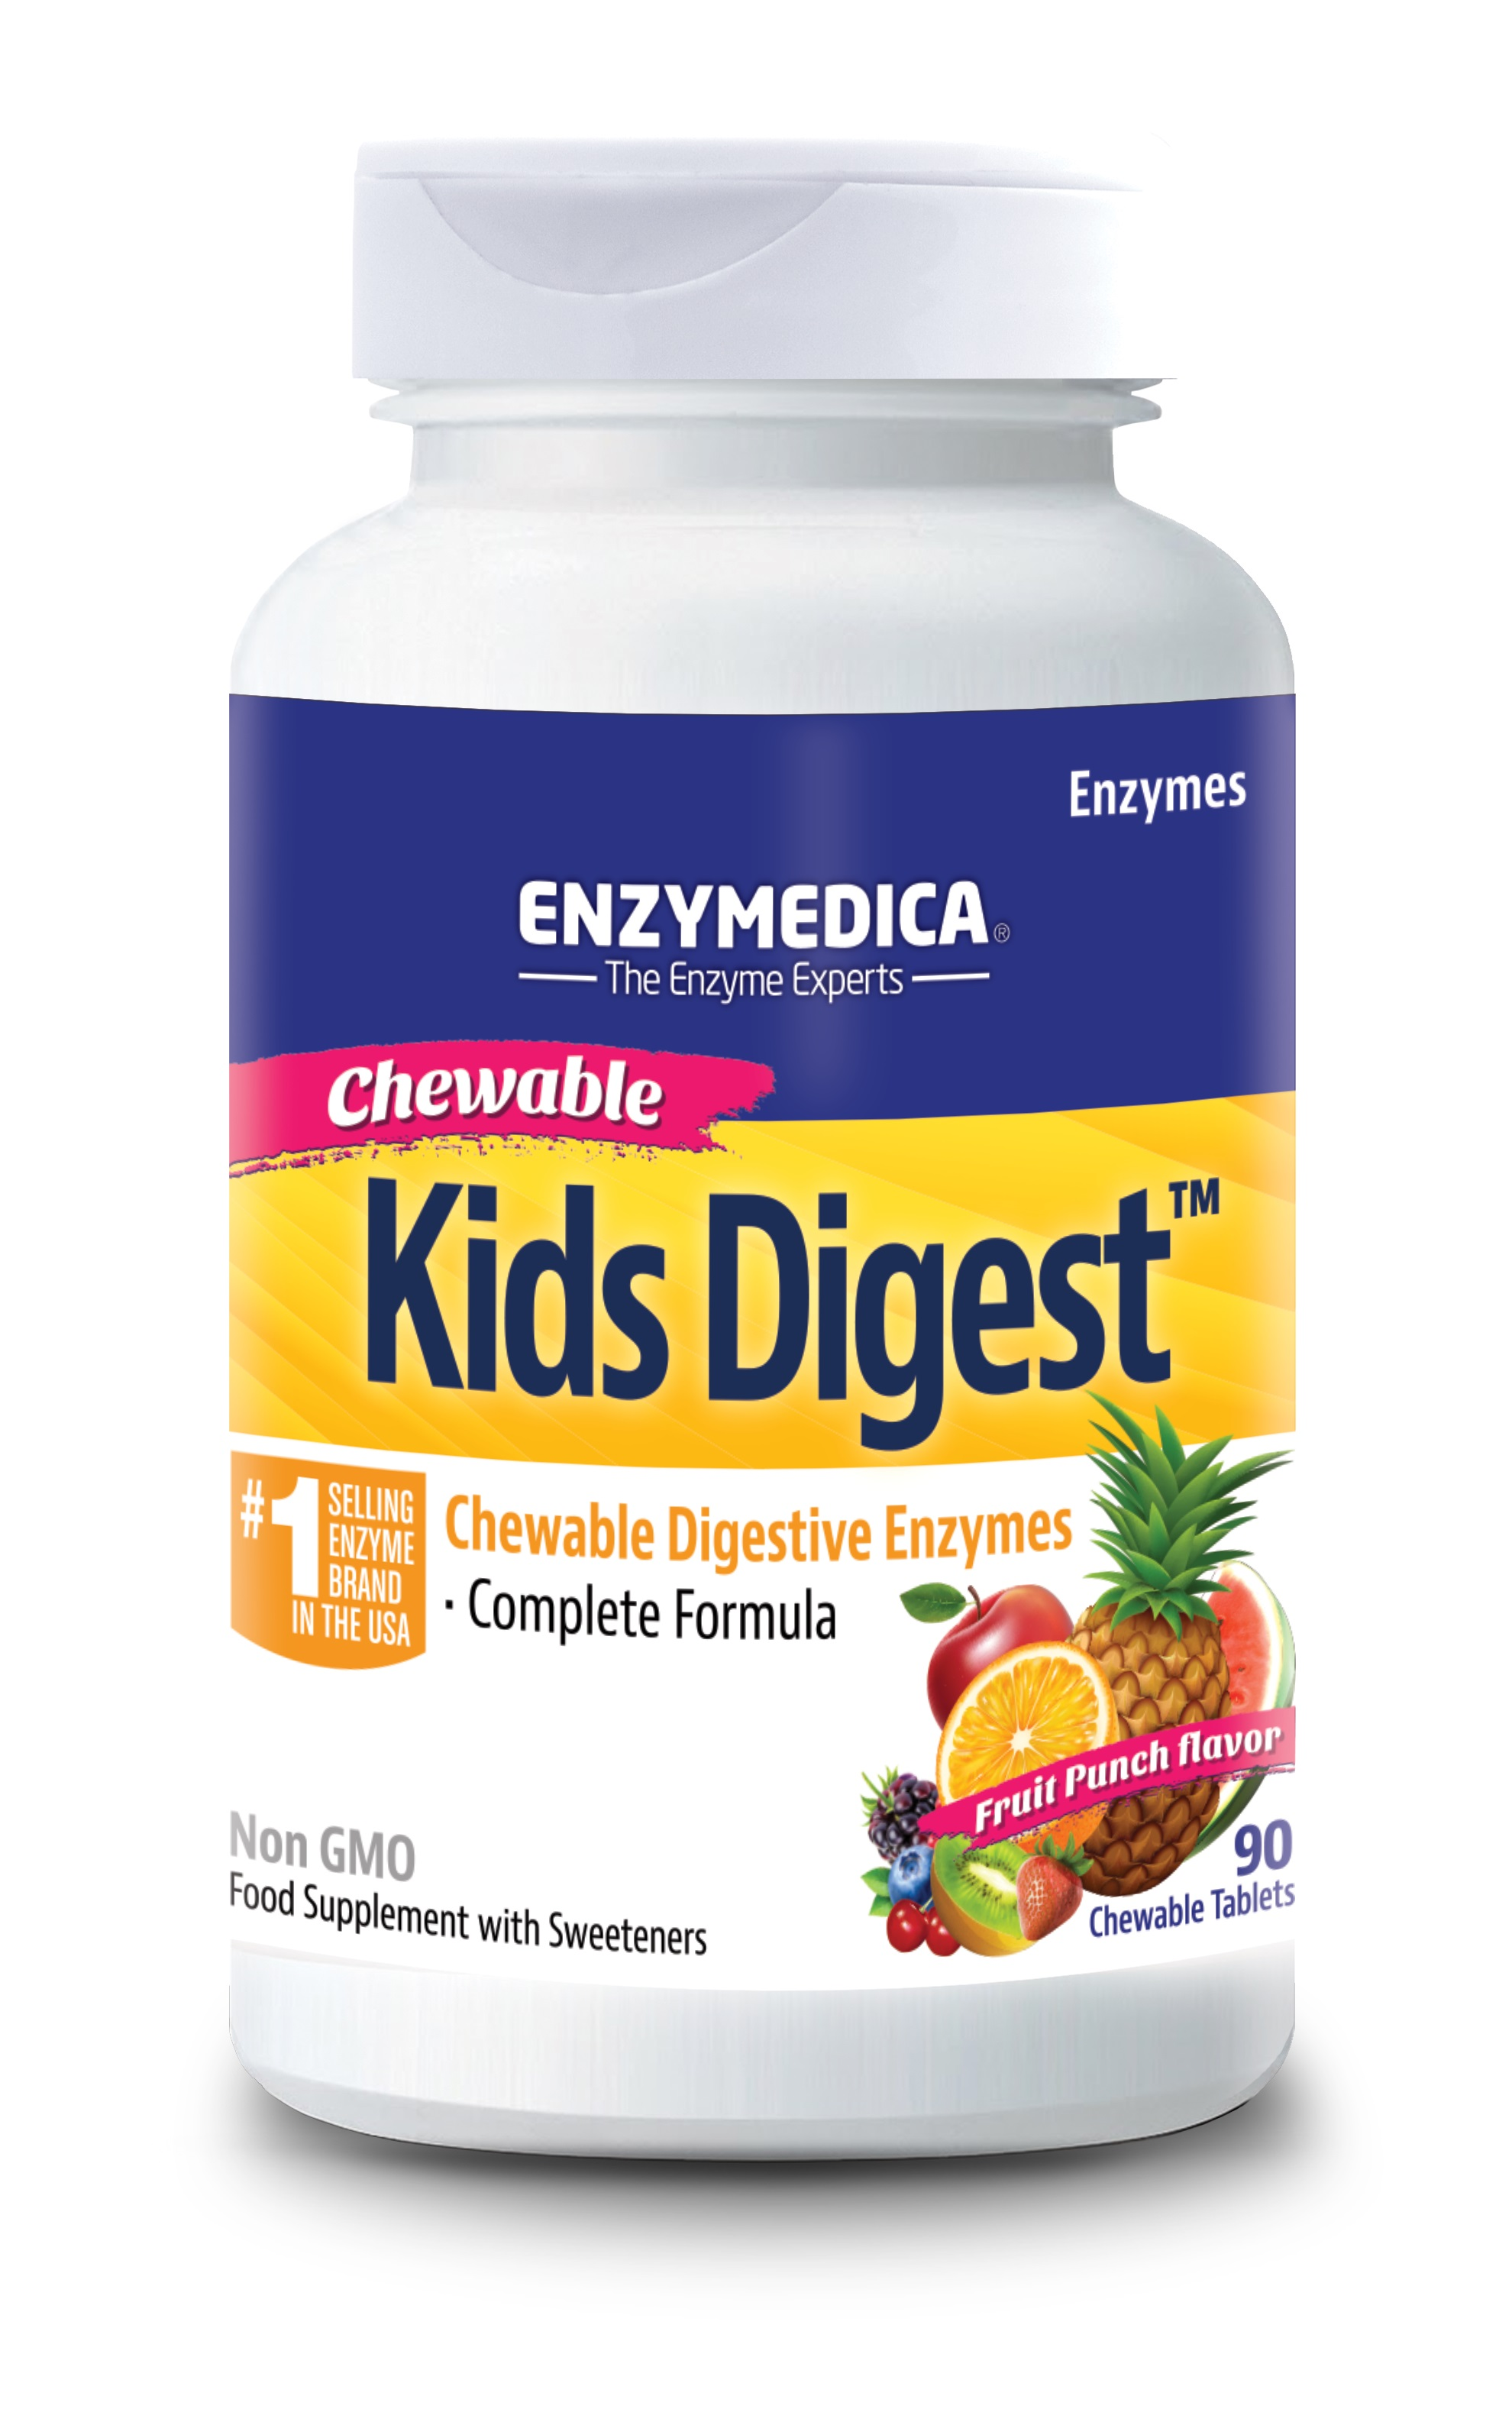 Kids Digest Chewable 90's (Currently Unavailable)